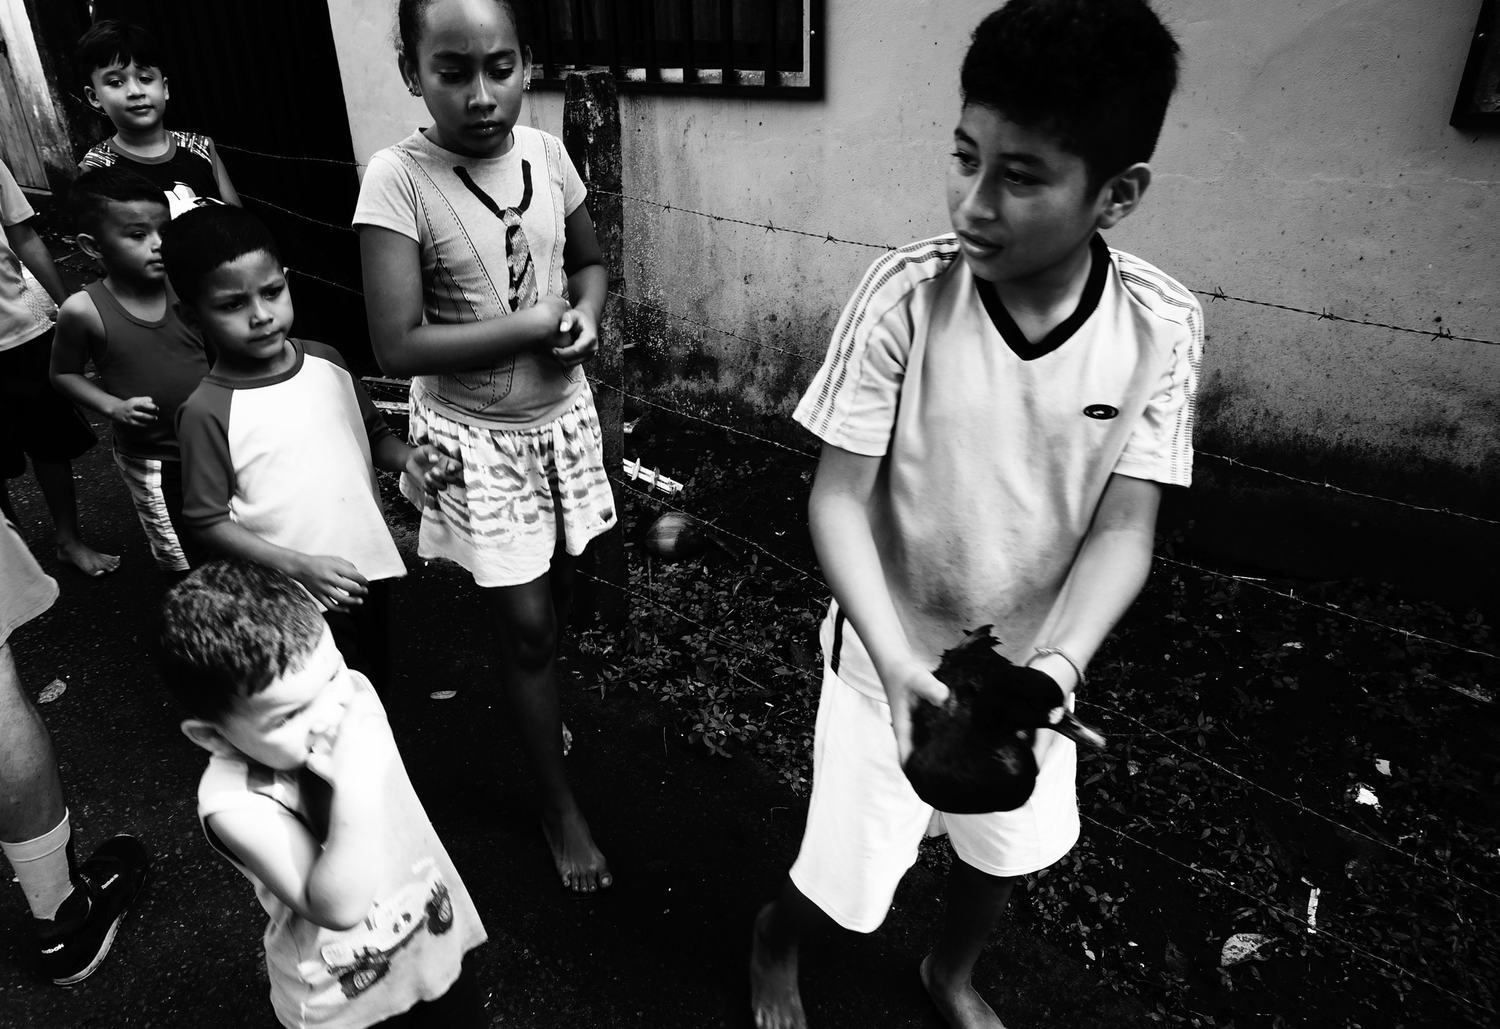 costa rica,children, black and white, world'schildren, street photography, art